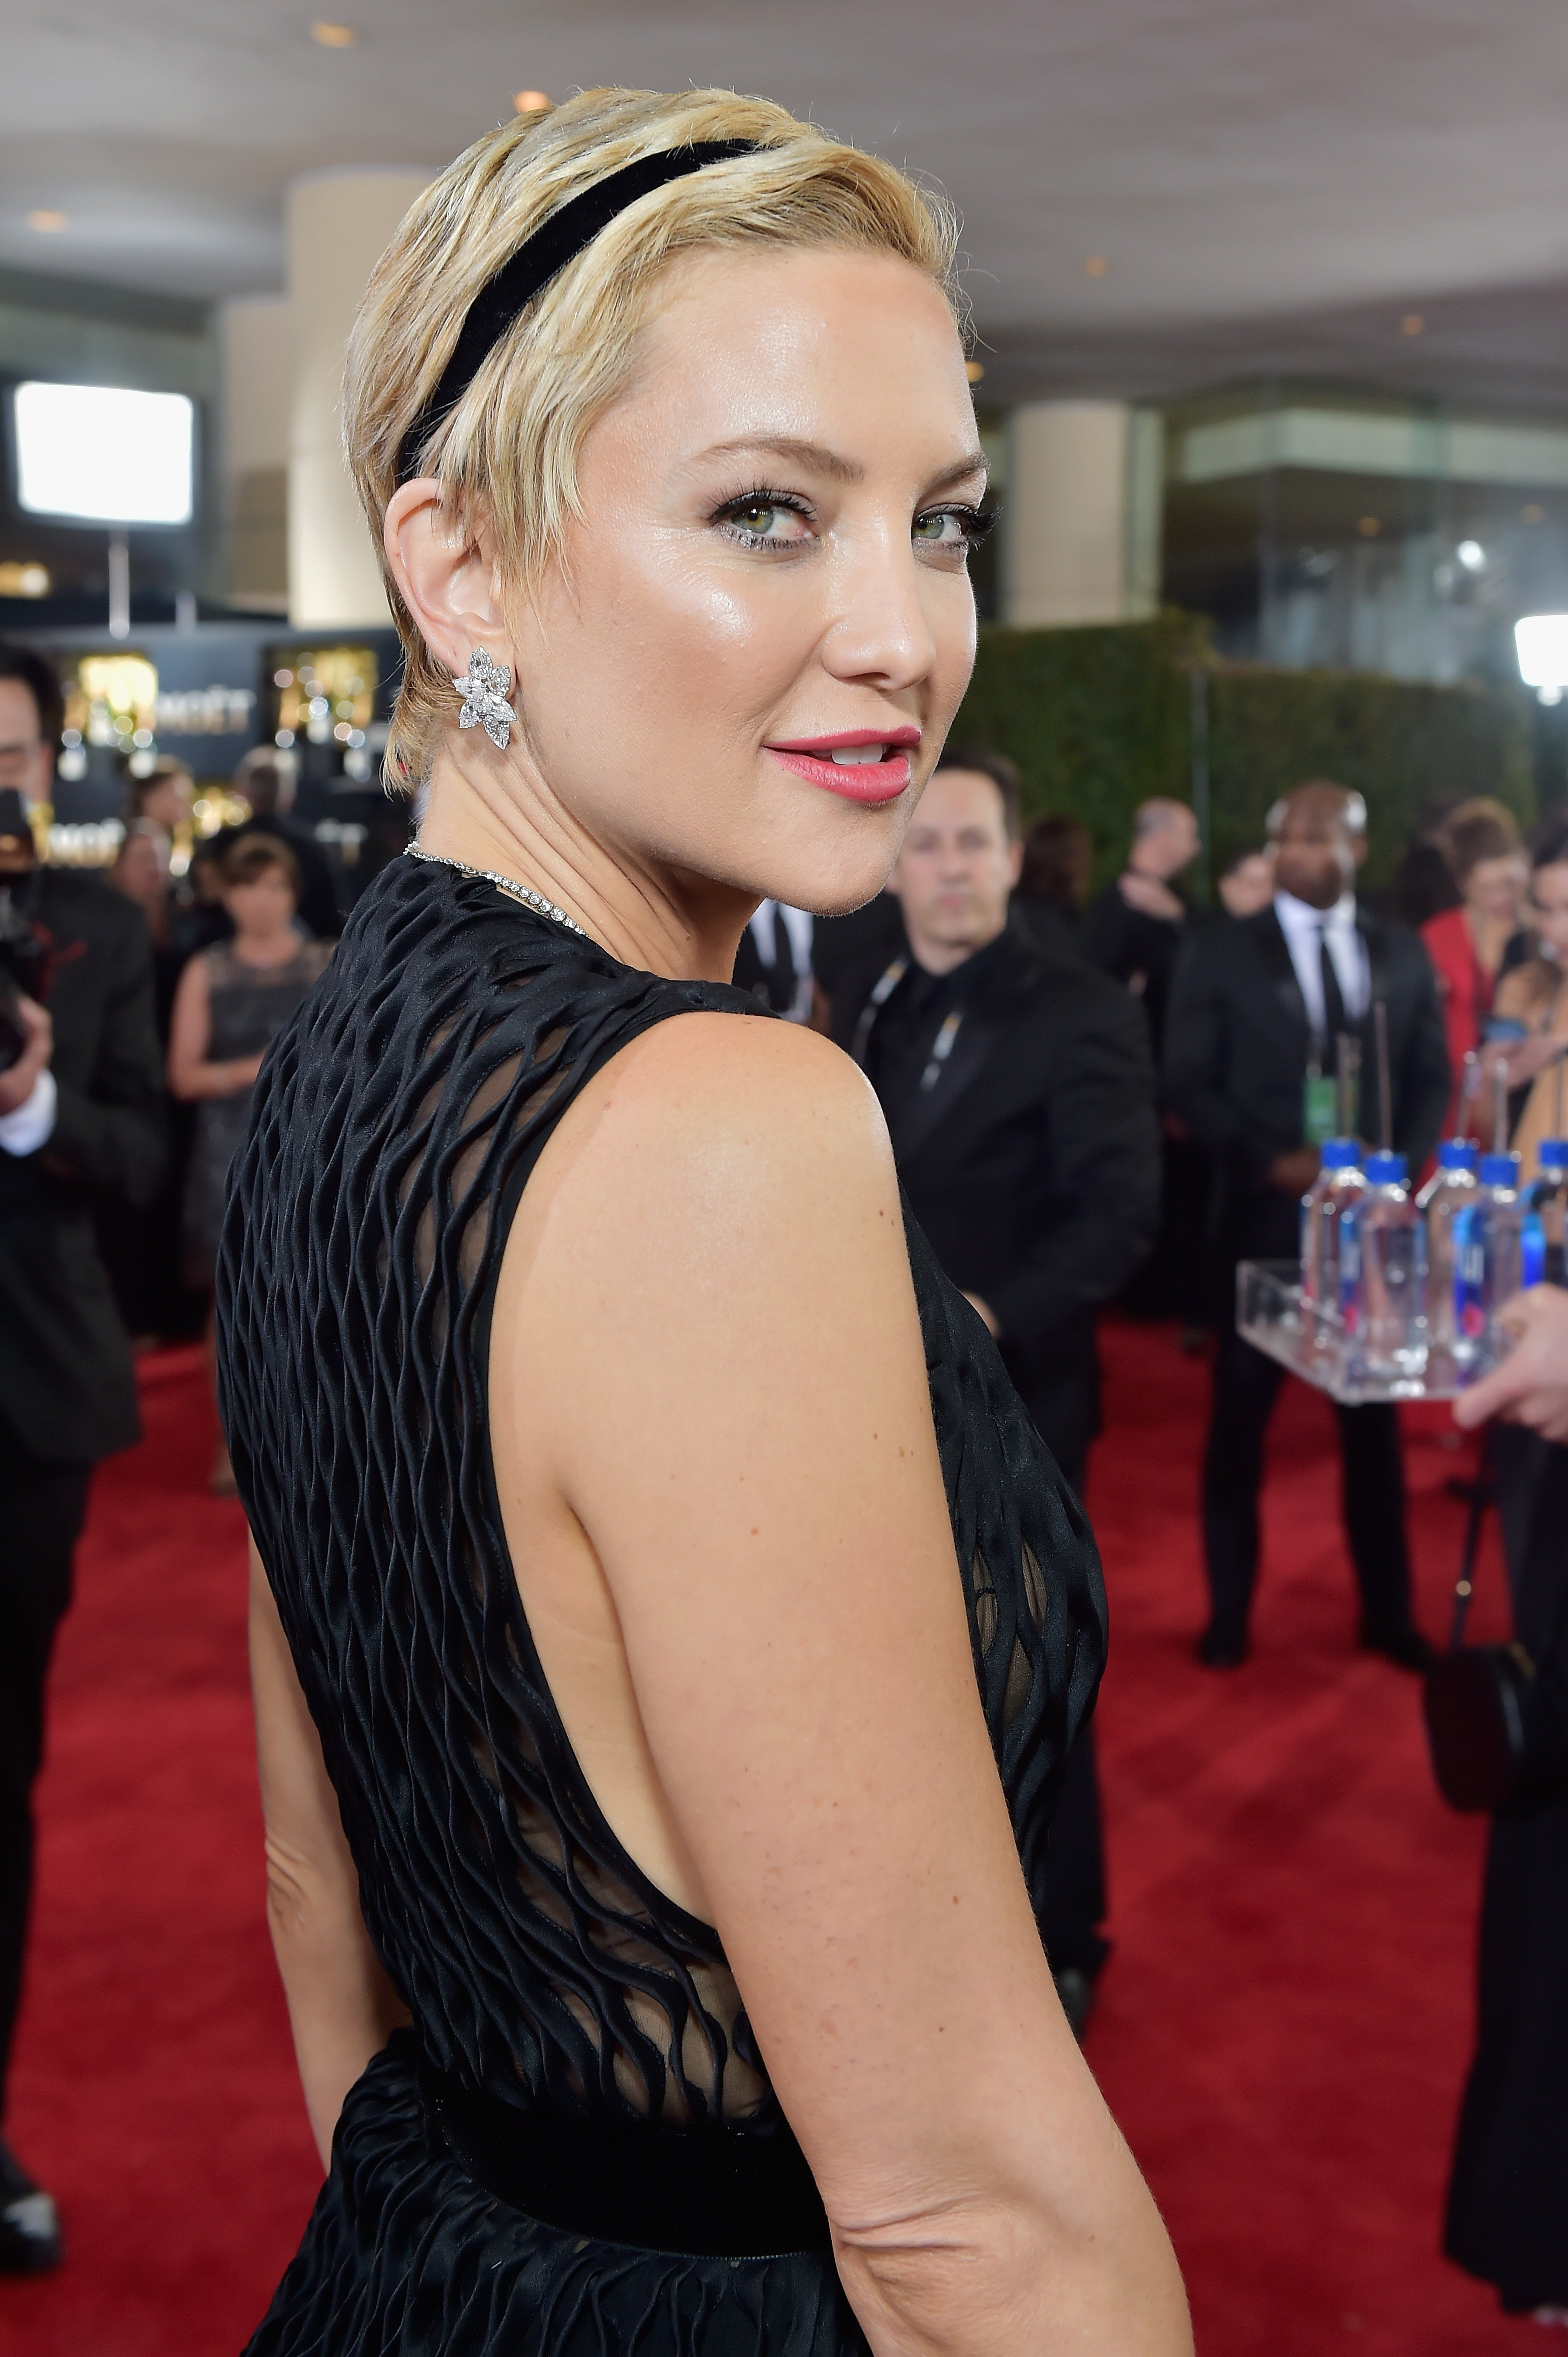 Image Credits: Getty Images / Stefanie Keenan | Actor Kate Hudson attends The 75th Annual Golden Globe Awards at The Beverly Hilton Hotel on January 7, 2018 in Beverly Hills, California.